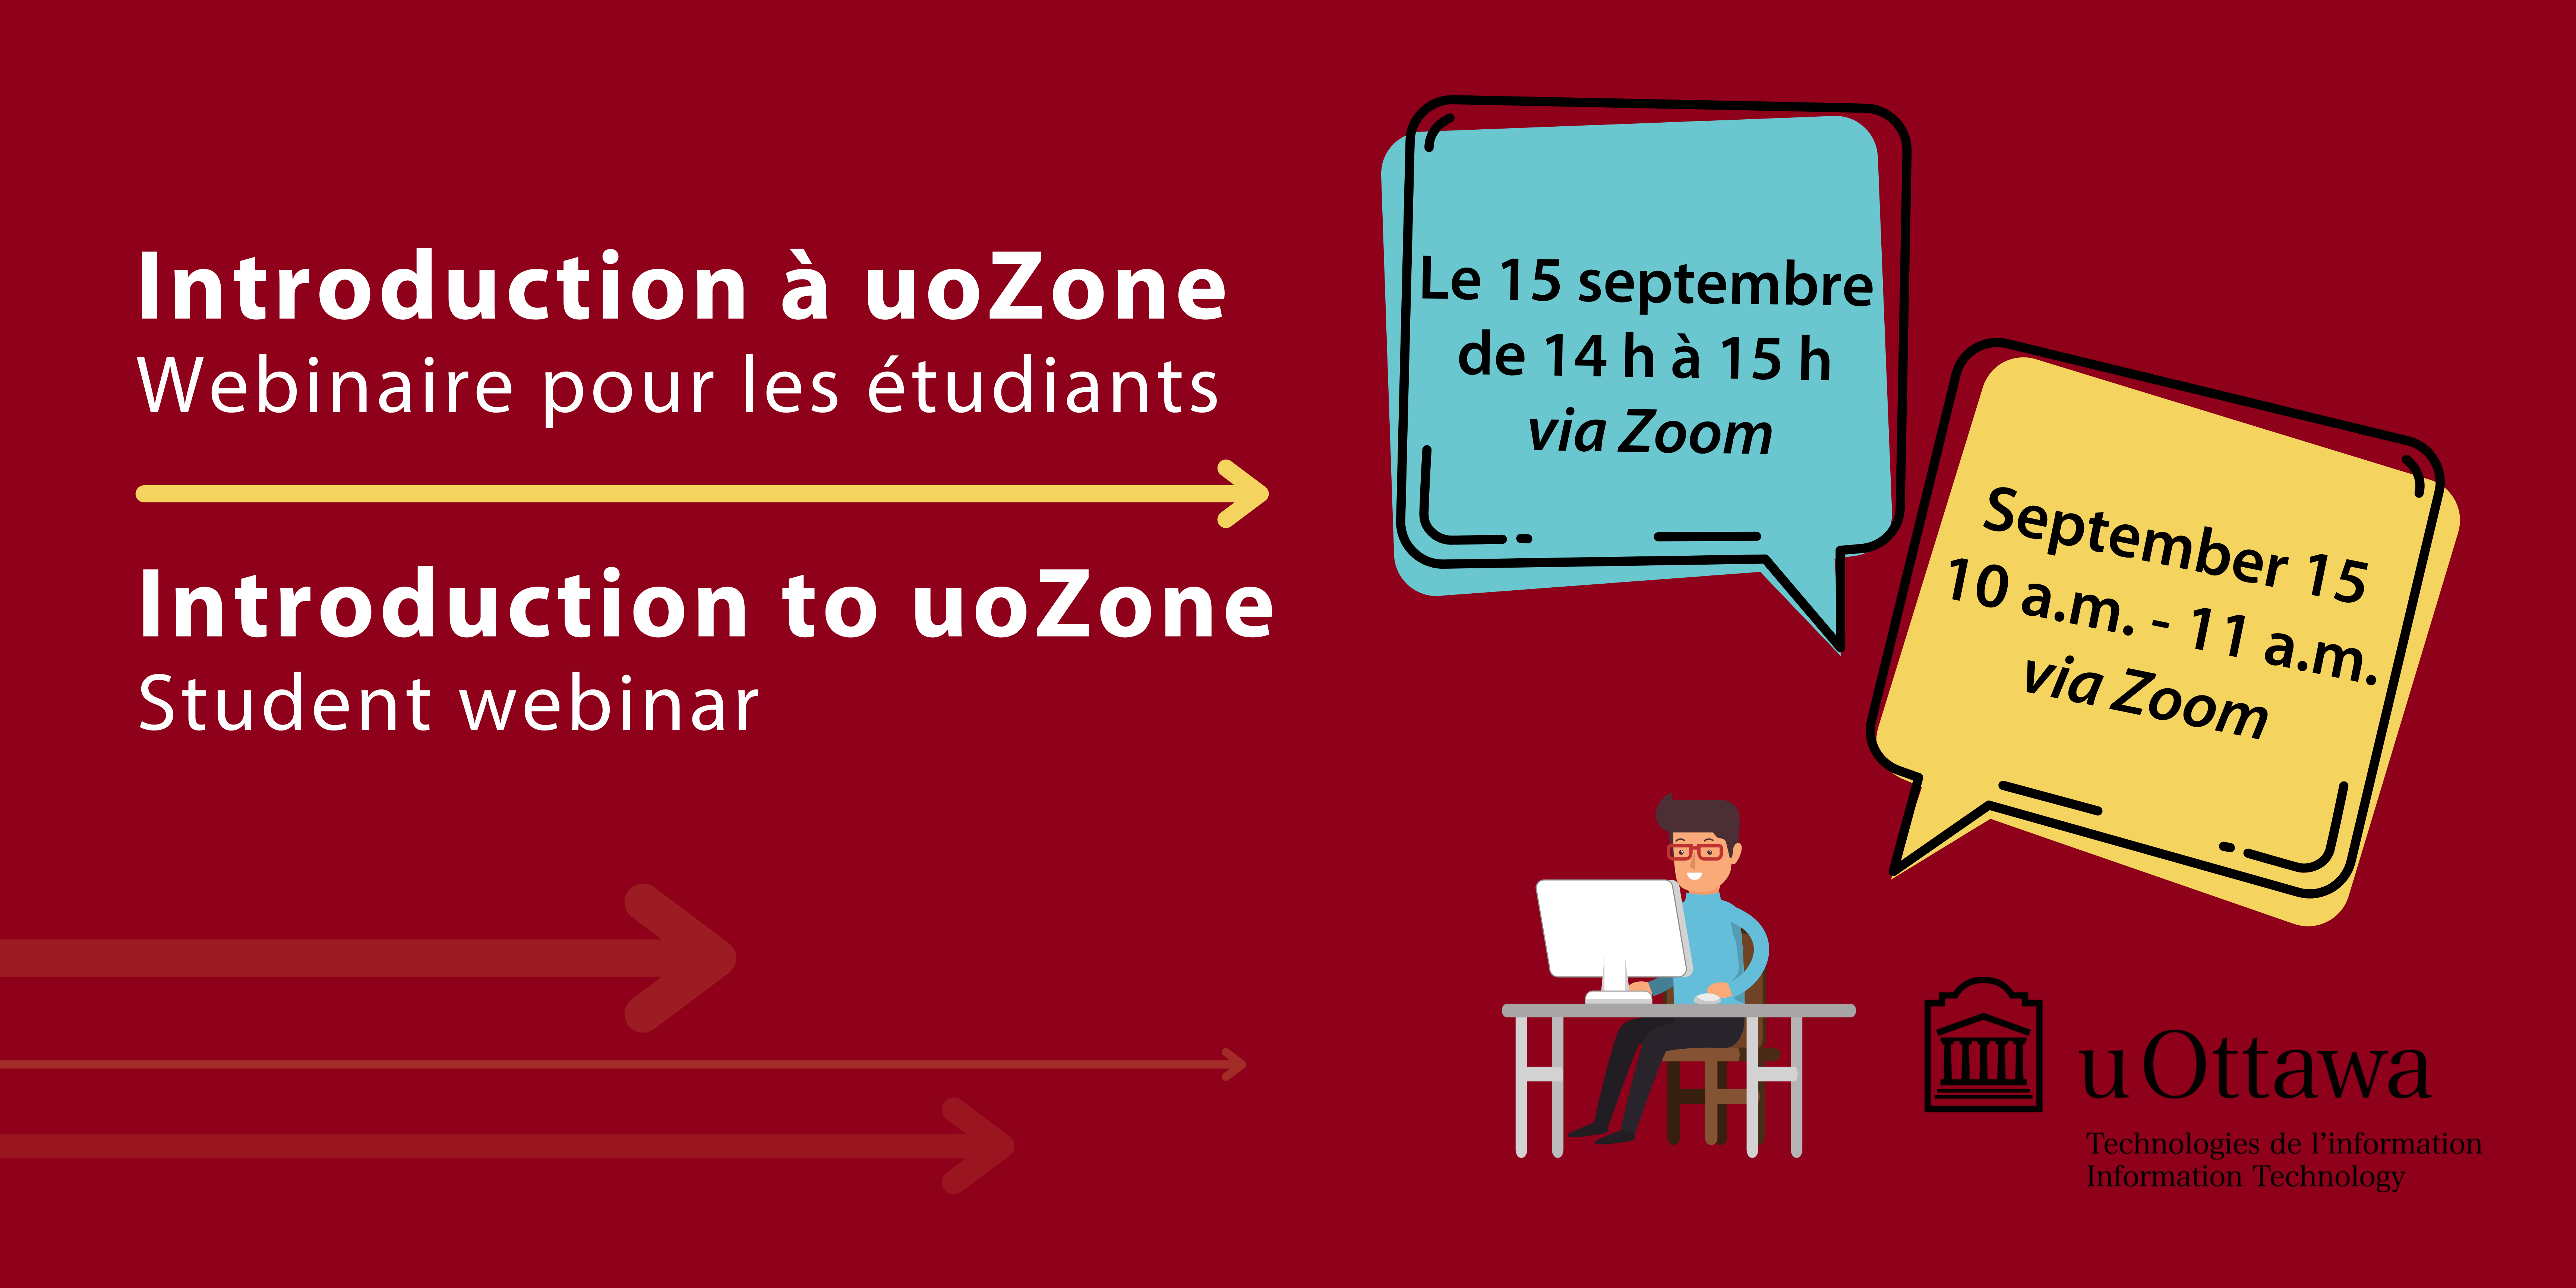 vector image of male at desk working on computer with heading 'Introduction to uoZone - Student webinar' includes speech bubble with text September 15, 10-11 am, via Zoom